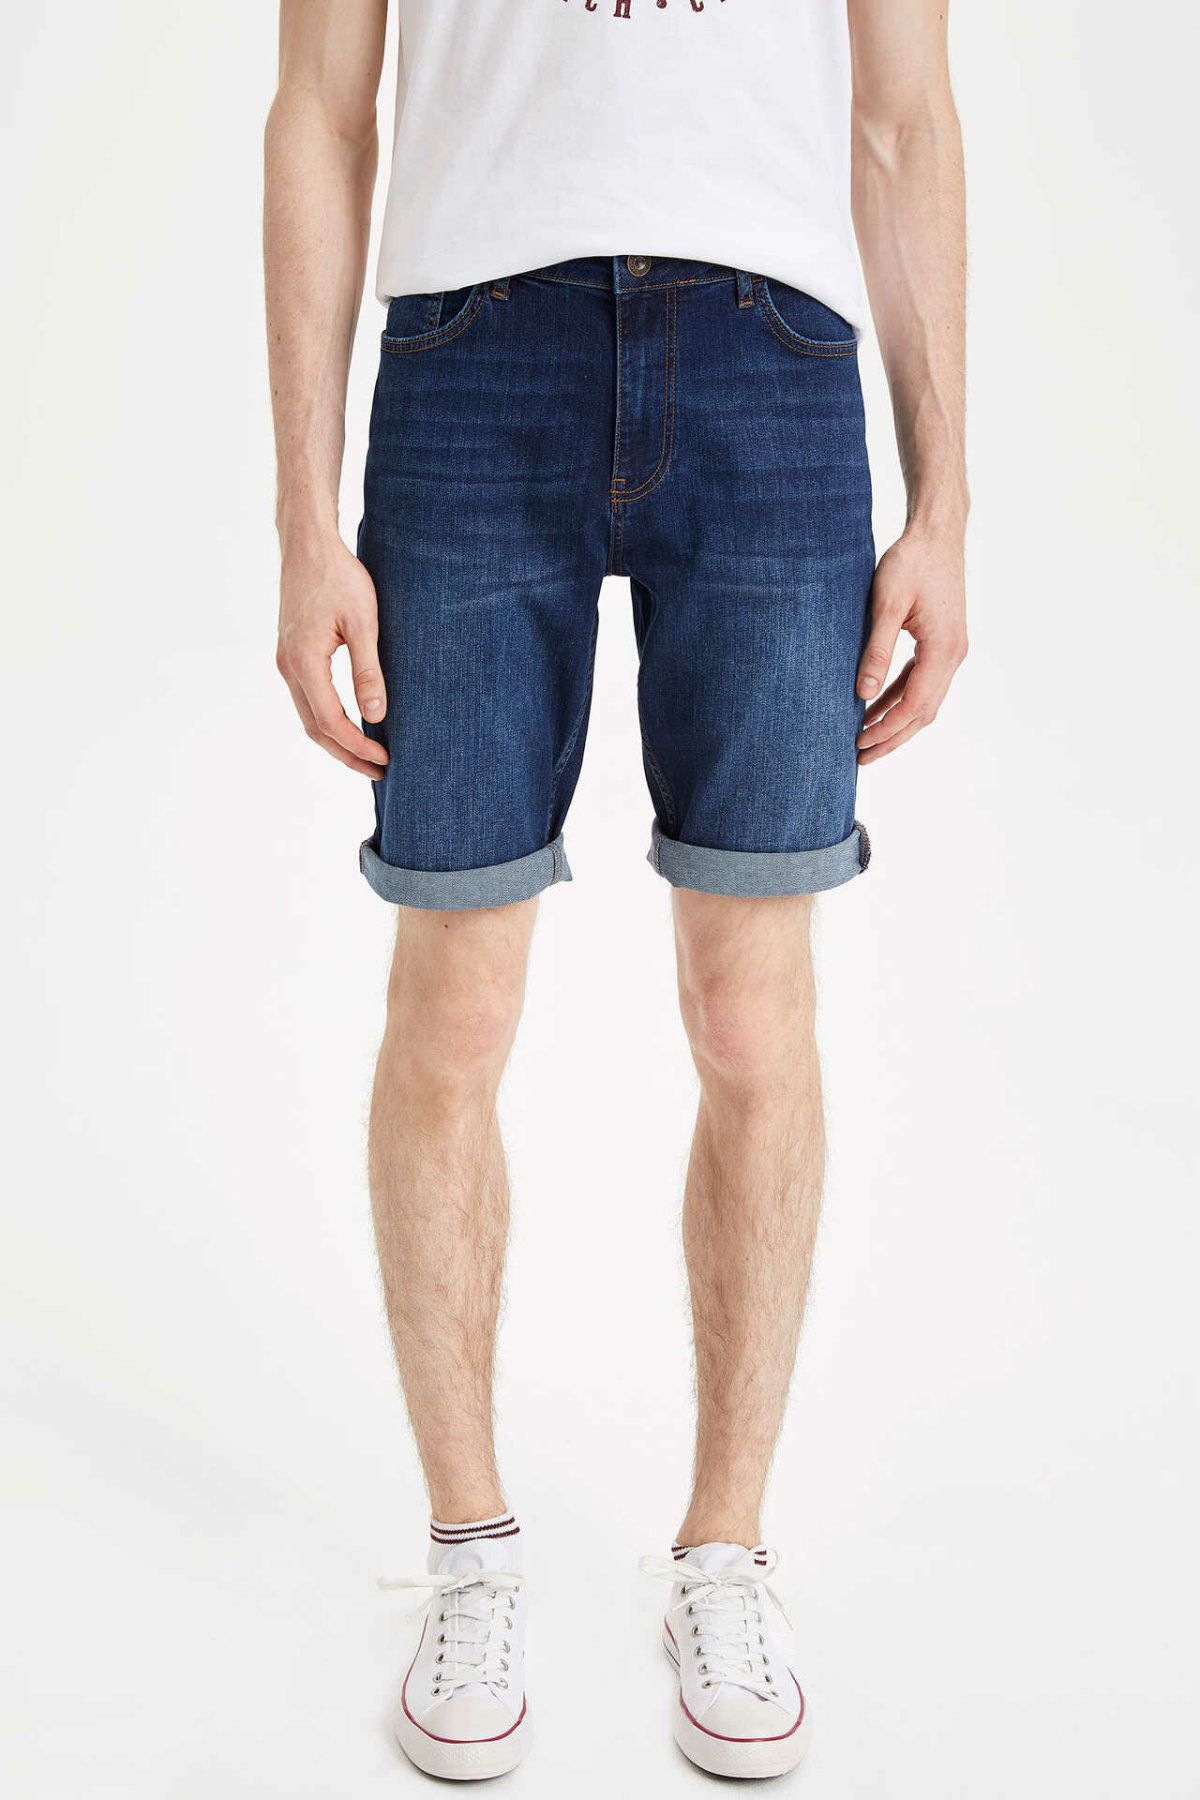 DeFacto New Man Fashion Short Jeans Male Casual Comfort Shorts High Quality Men's Loose Pure Color Denim Shorts -L0197AZ19SM